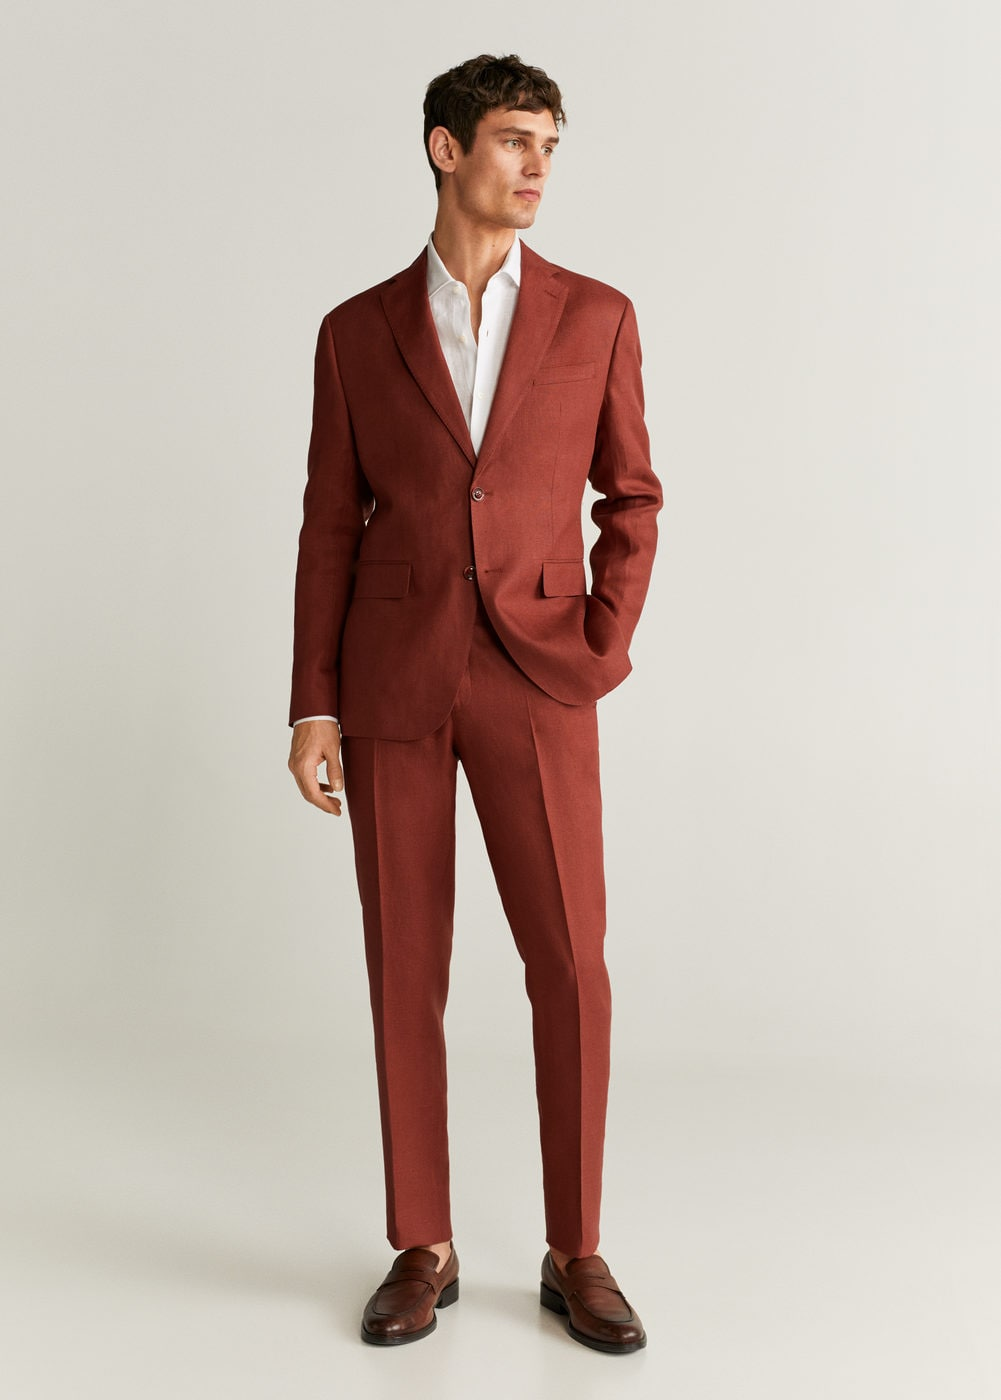 2020 fall wedding ideas include rust orange suits